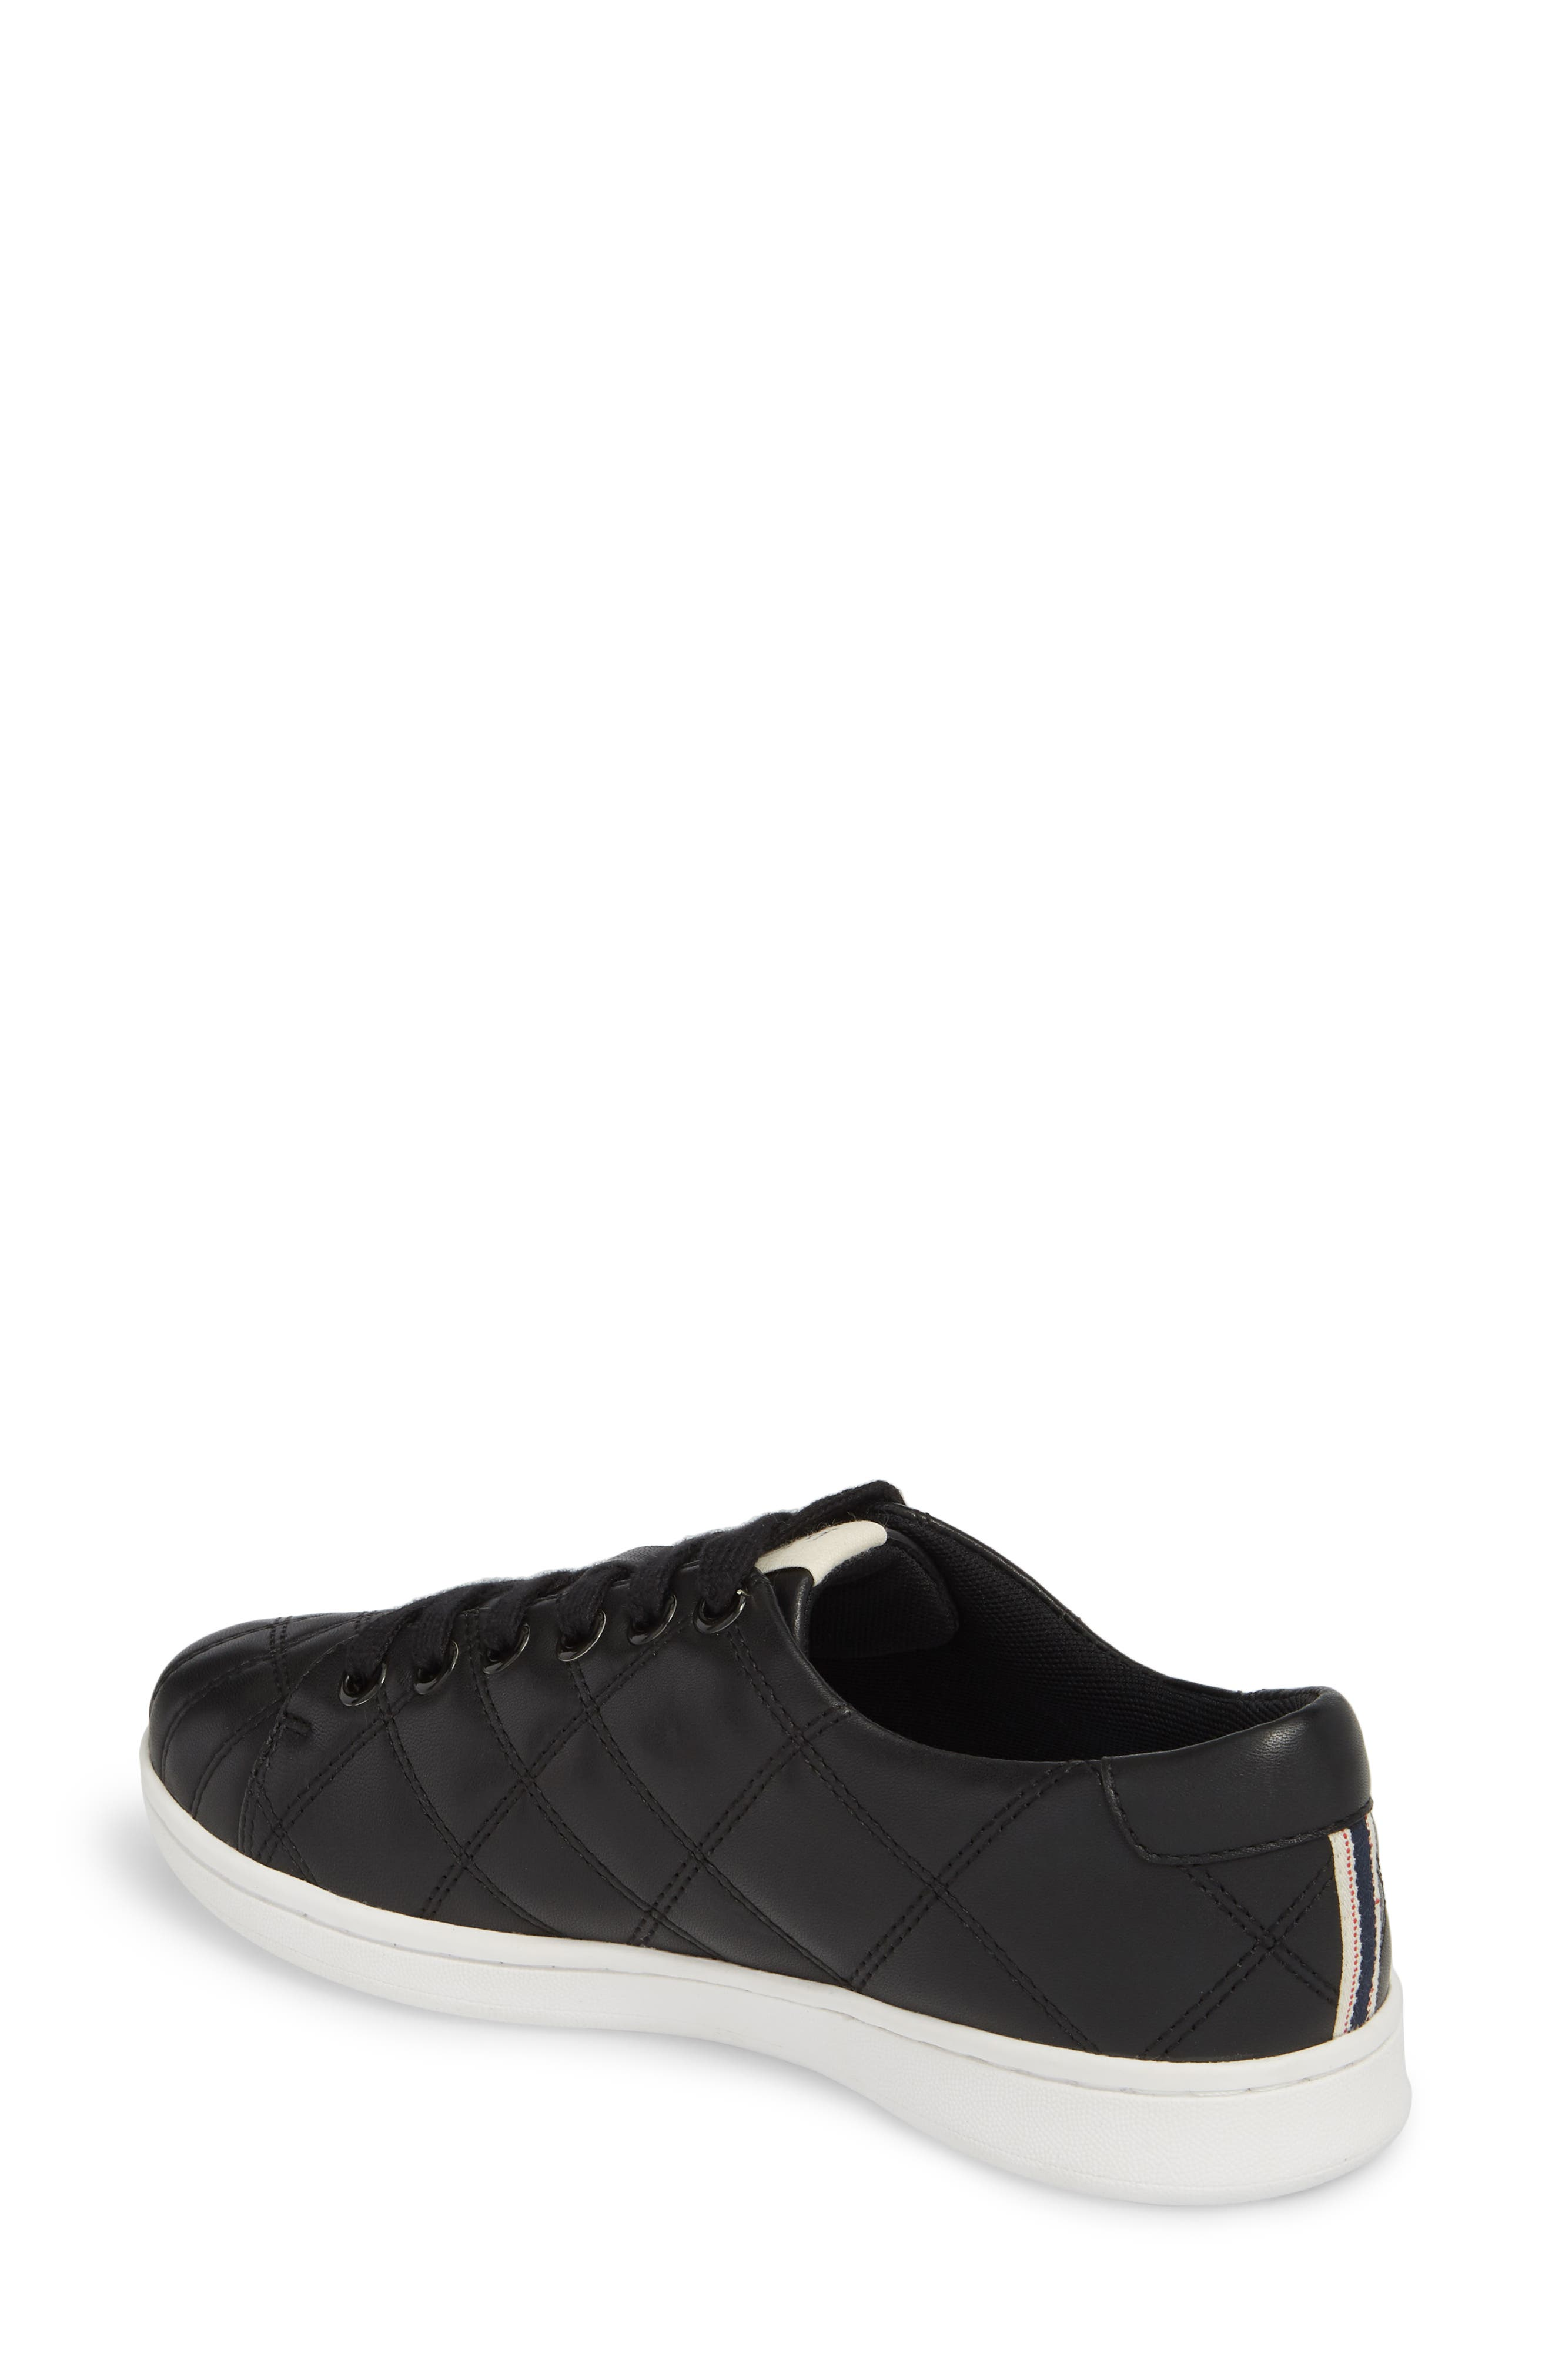 Crowley Quilted Sneaker,                             Alternate thumbnail 2, color,                             BLACK LEATHER